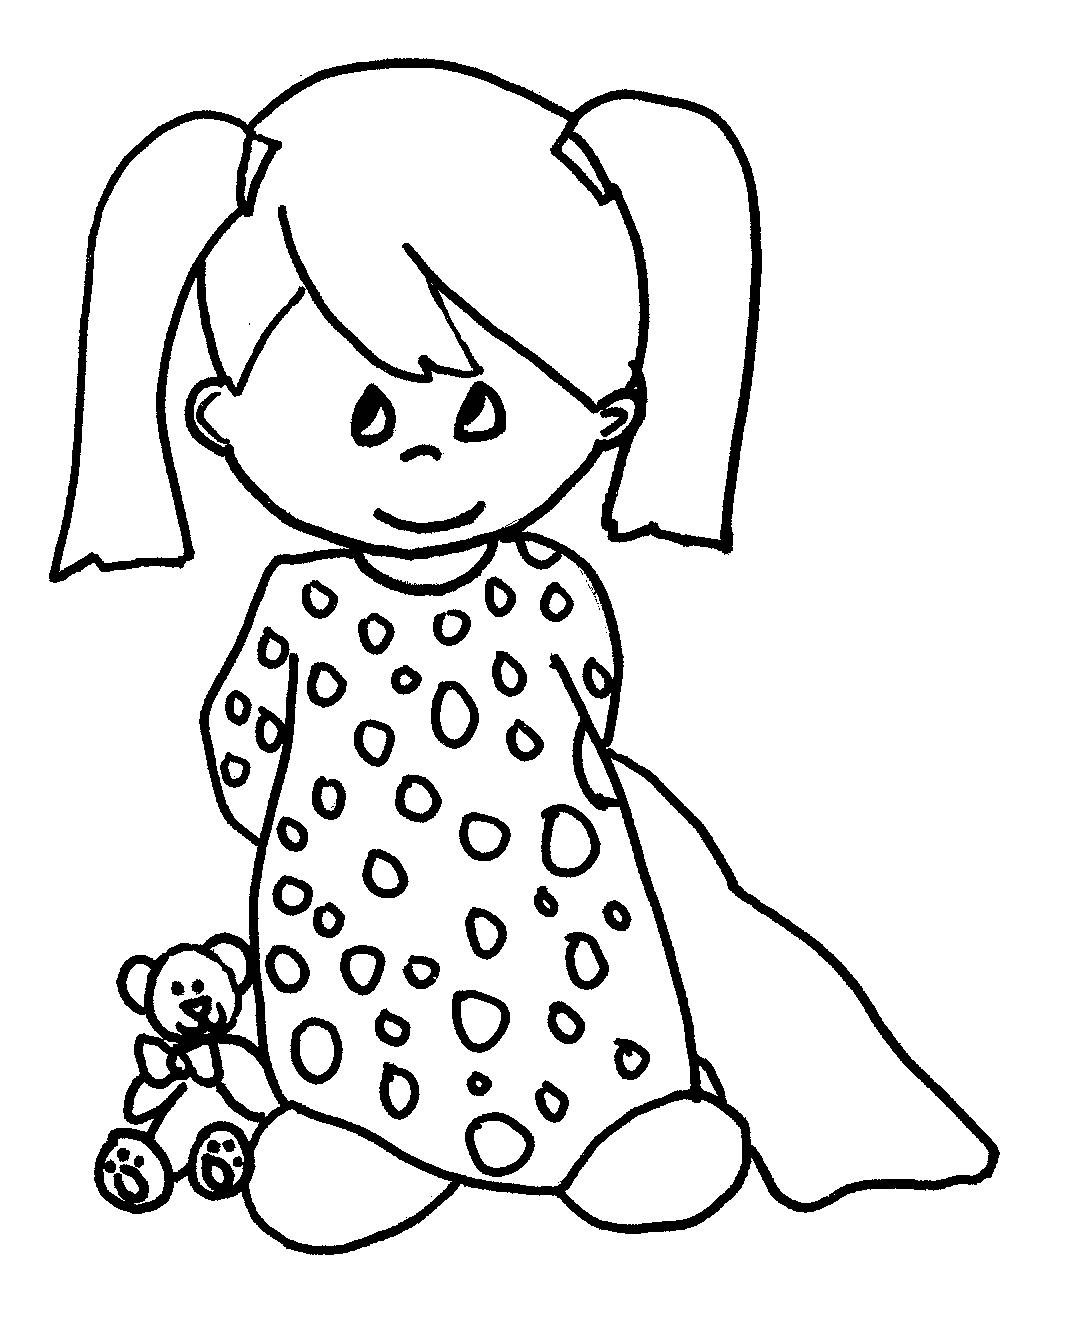 Simple Coloring Pages 3 Coloring Kids Basic Coloring Pages